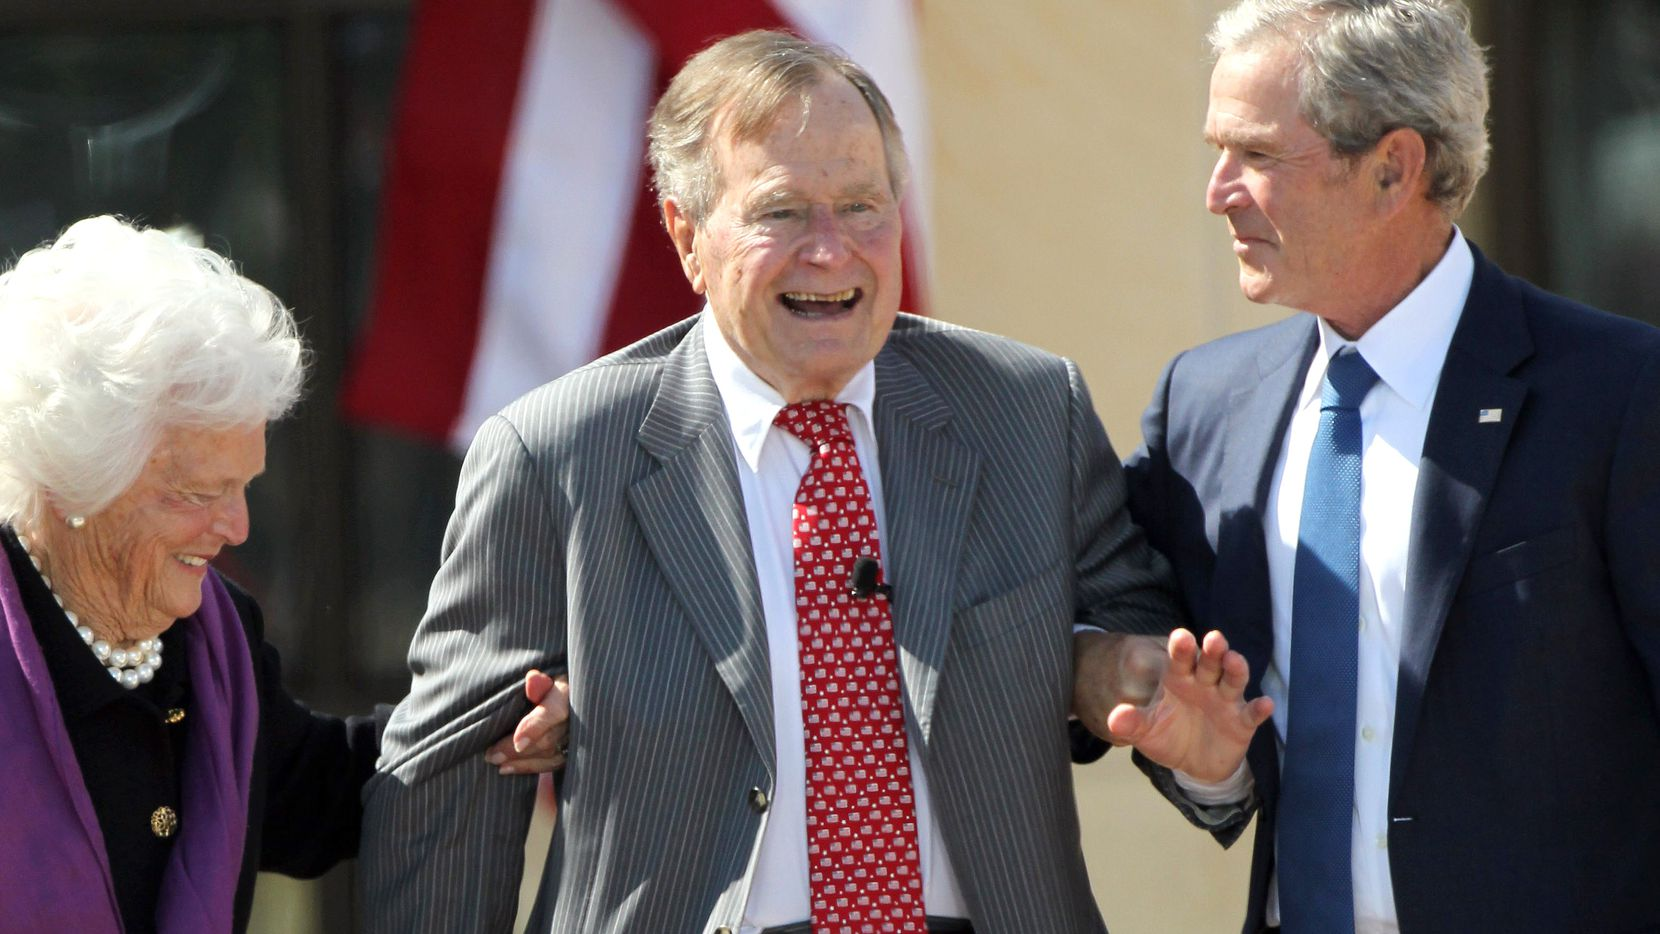 Former First Lady Barbara Bush and former President George W. Bush help former President George H.W. Bush to his feet as they acknowledge applause at the dedication of the George W. Bush Presidential Center in Dallas on April 25, 2013.